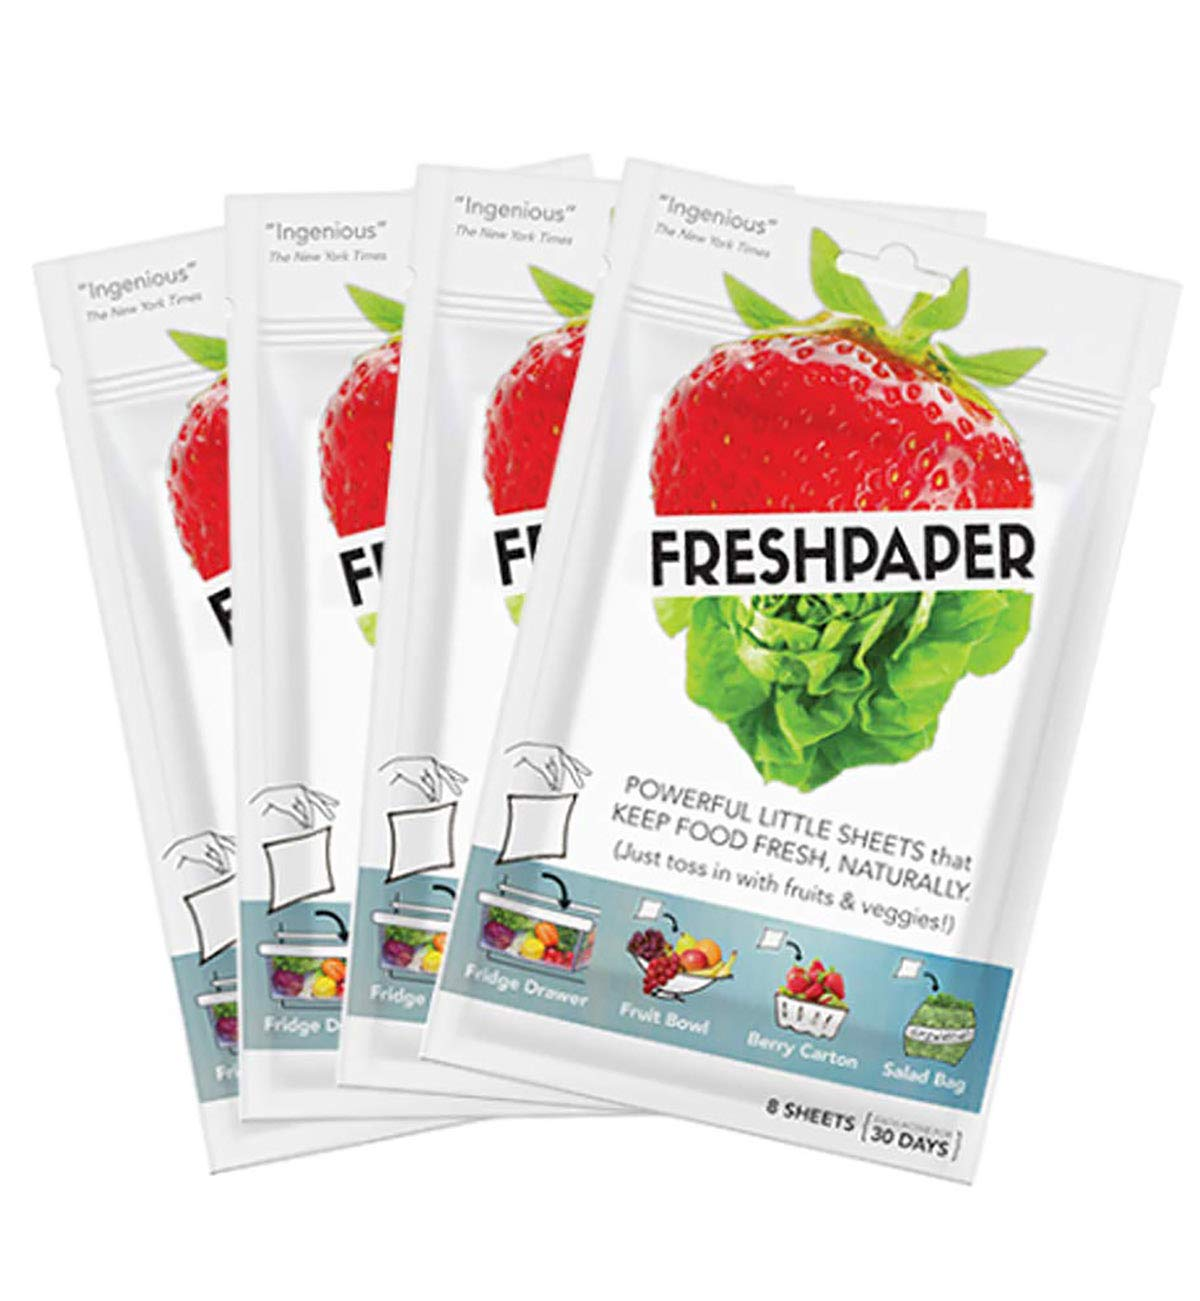 FRESHPAPER Food Saver Sheets for Produce (8-sheet package) - 4 Pack